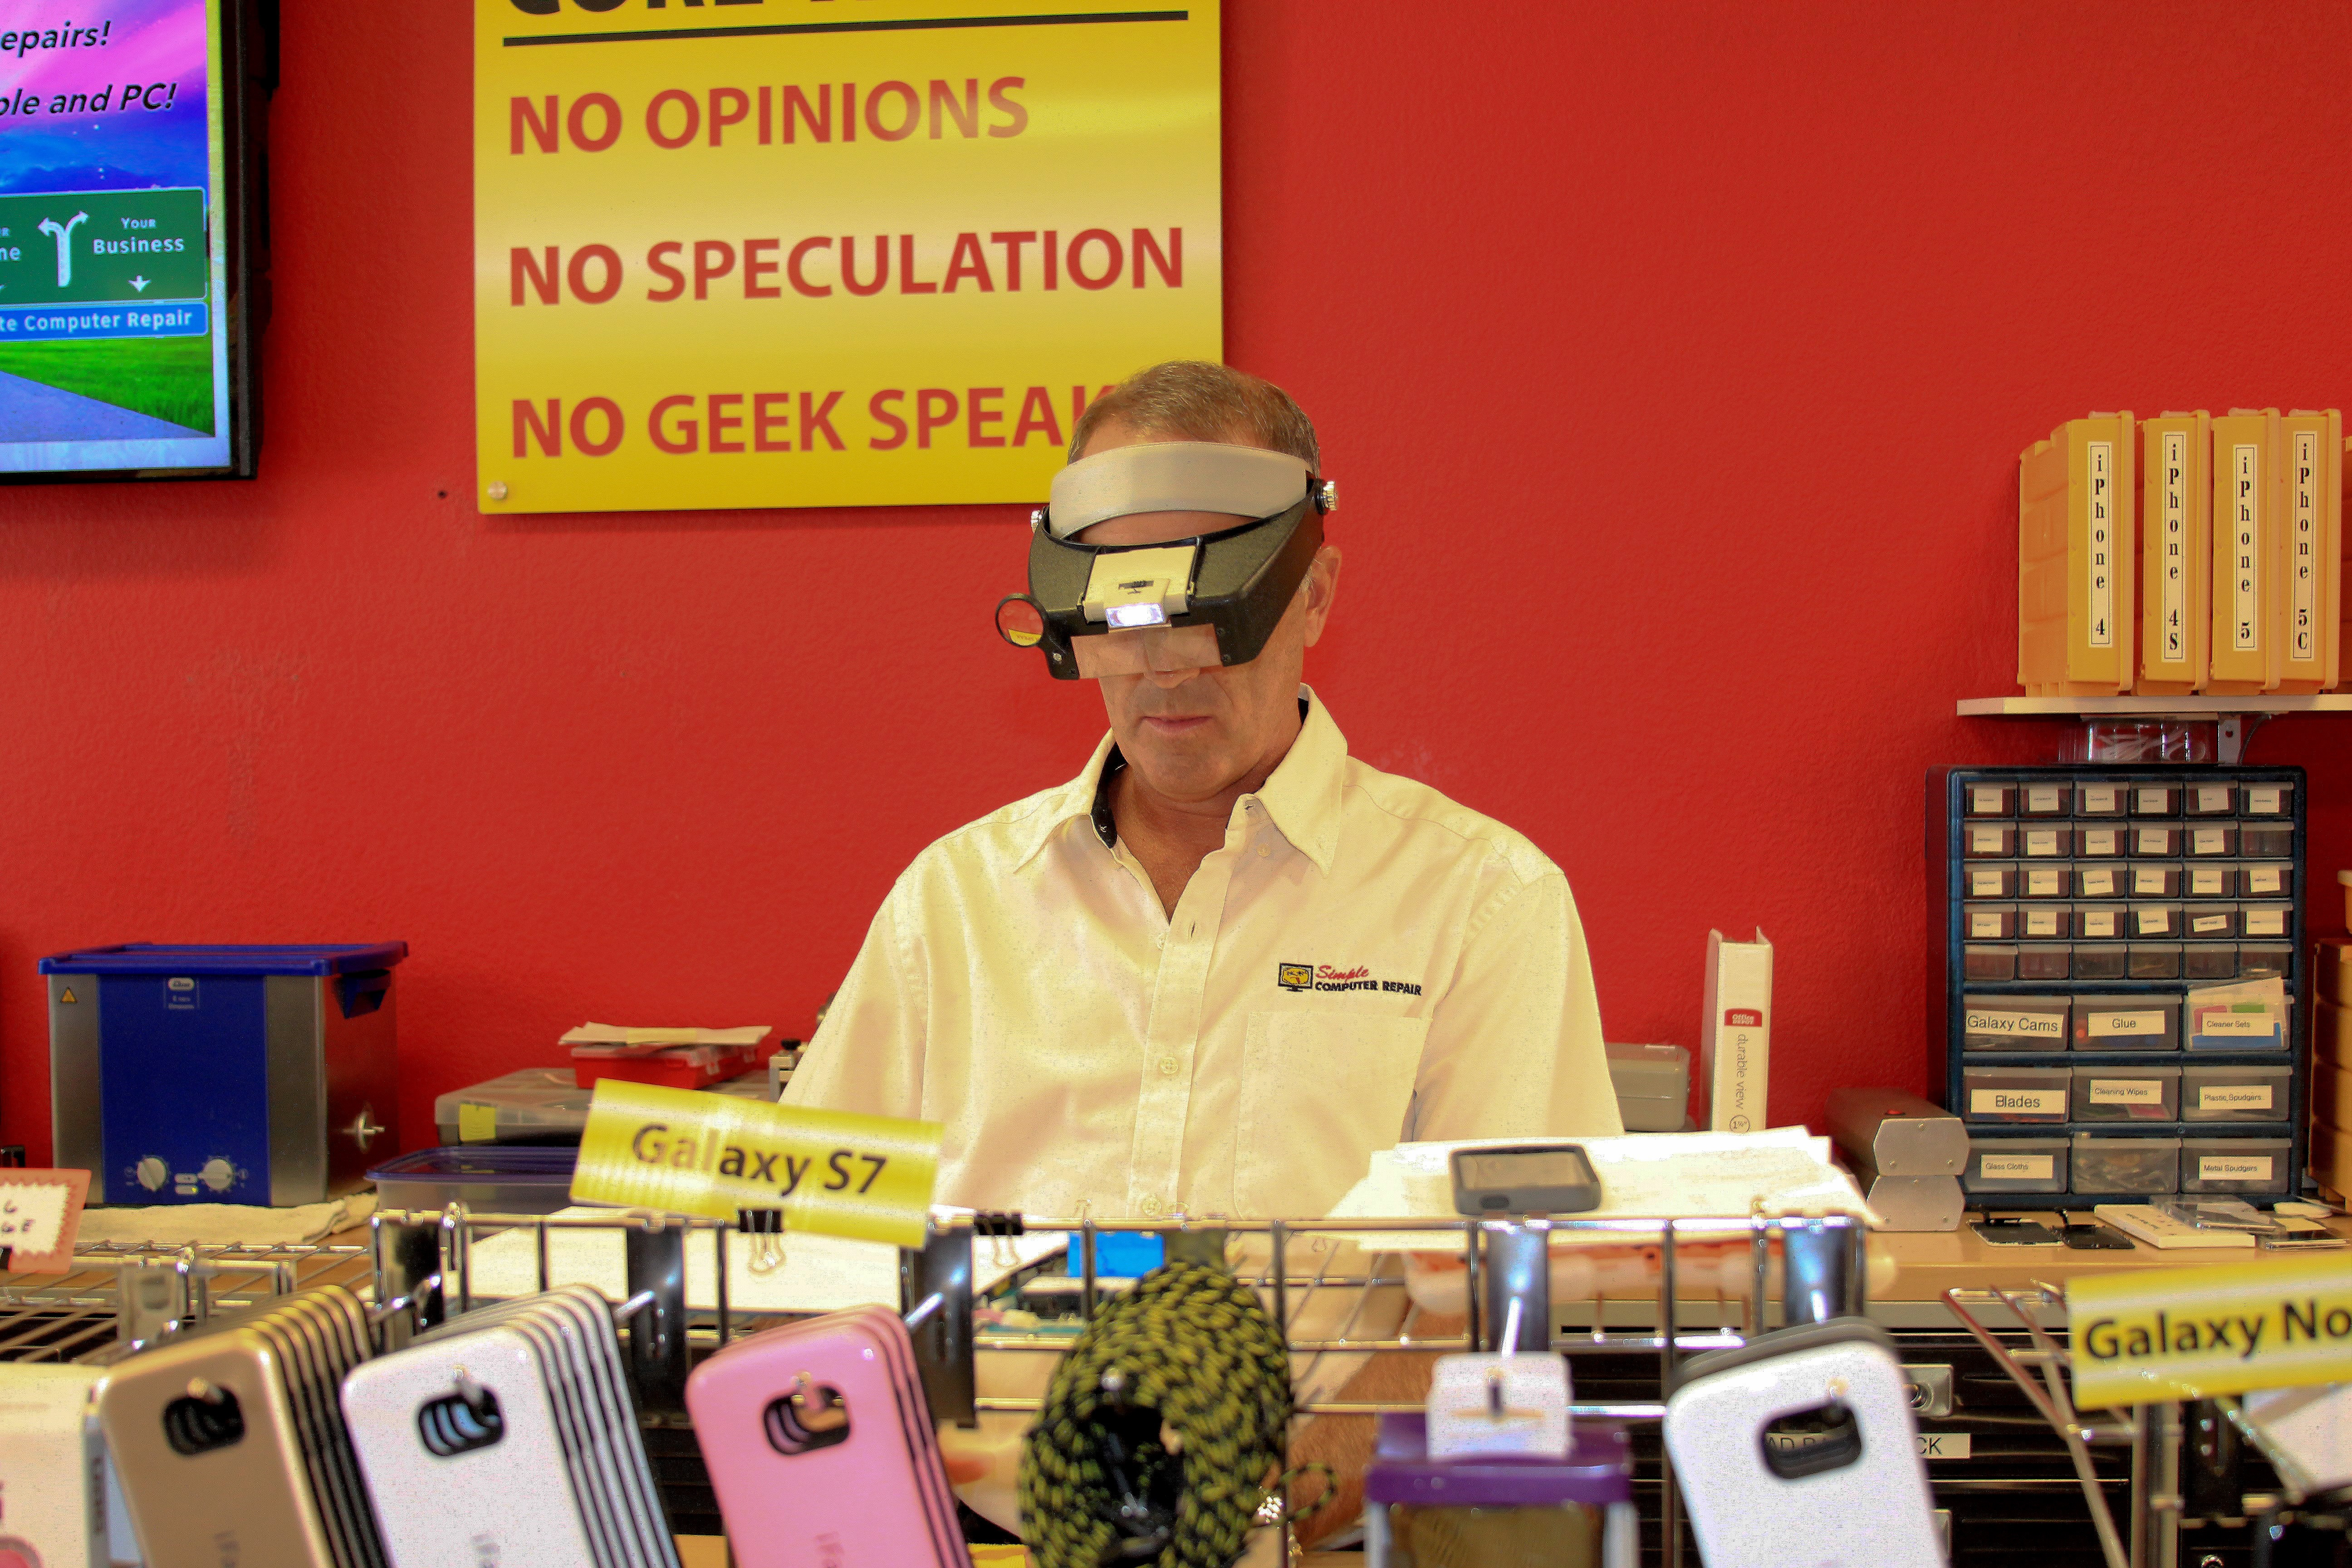 Eric during his visit to the Henderson, Nevada SCR store